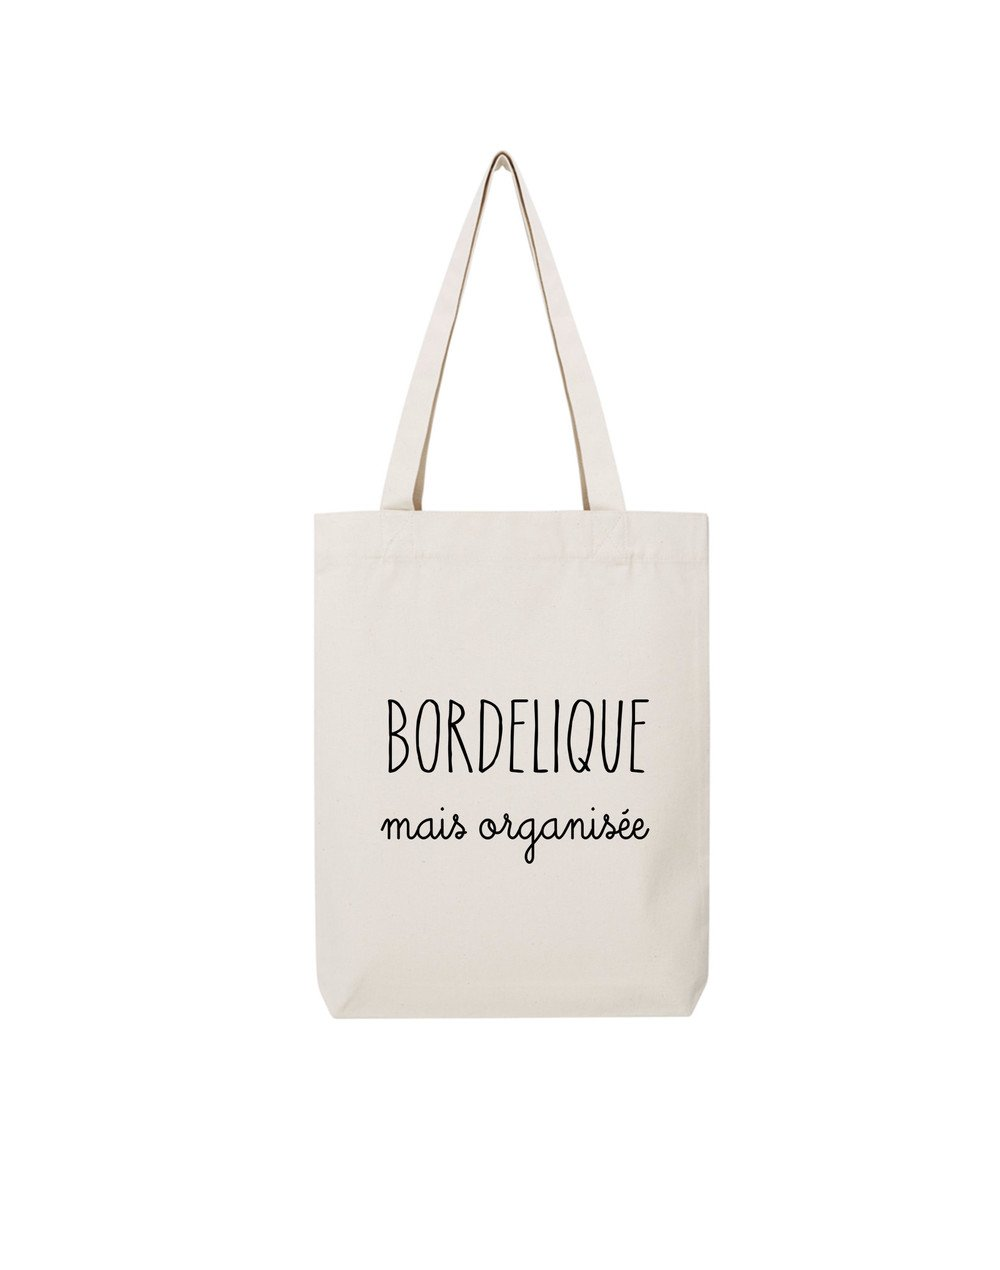 Tote bag - bordélique mais organisée NScWaCg